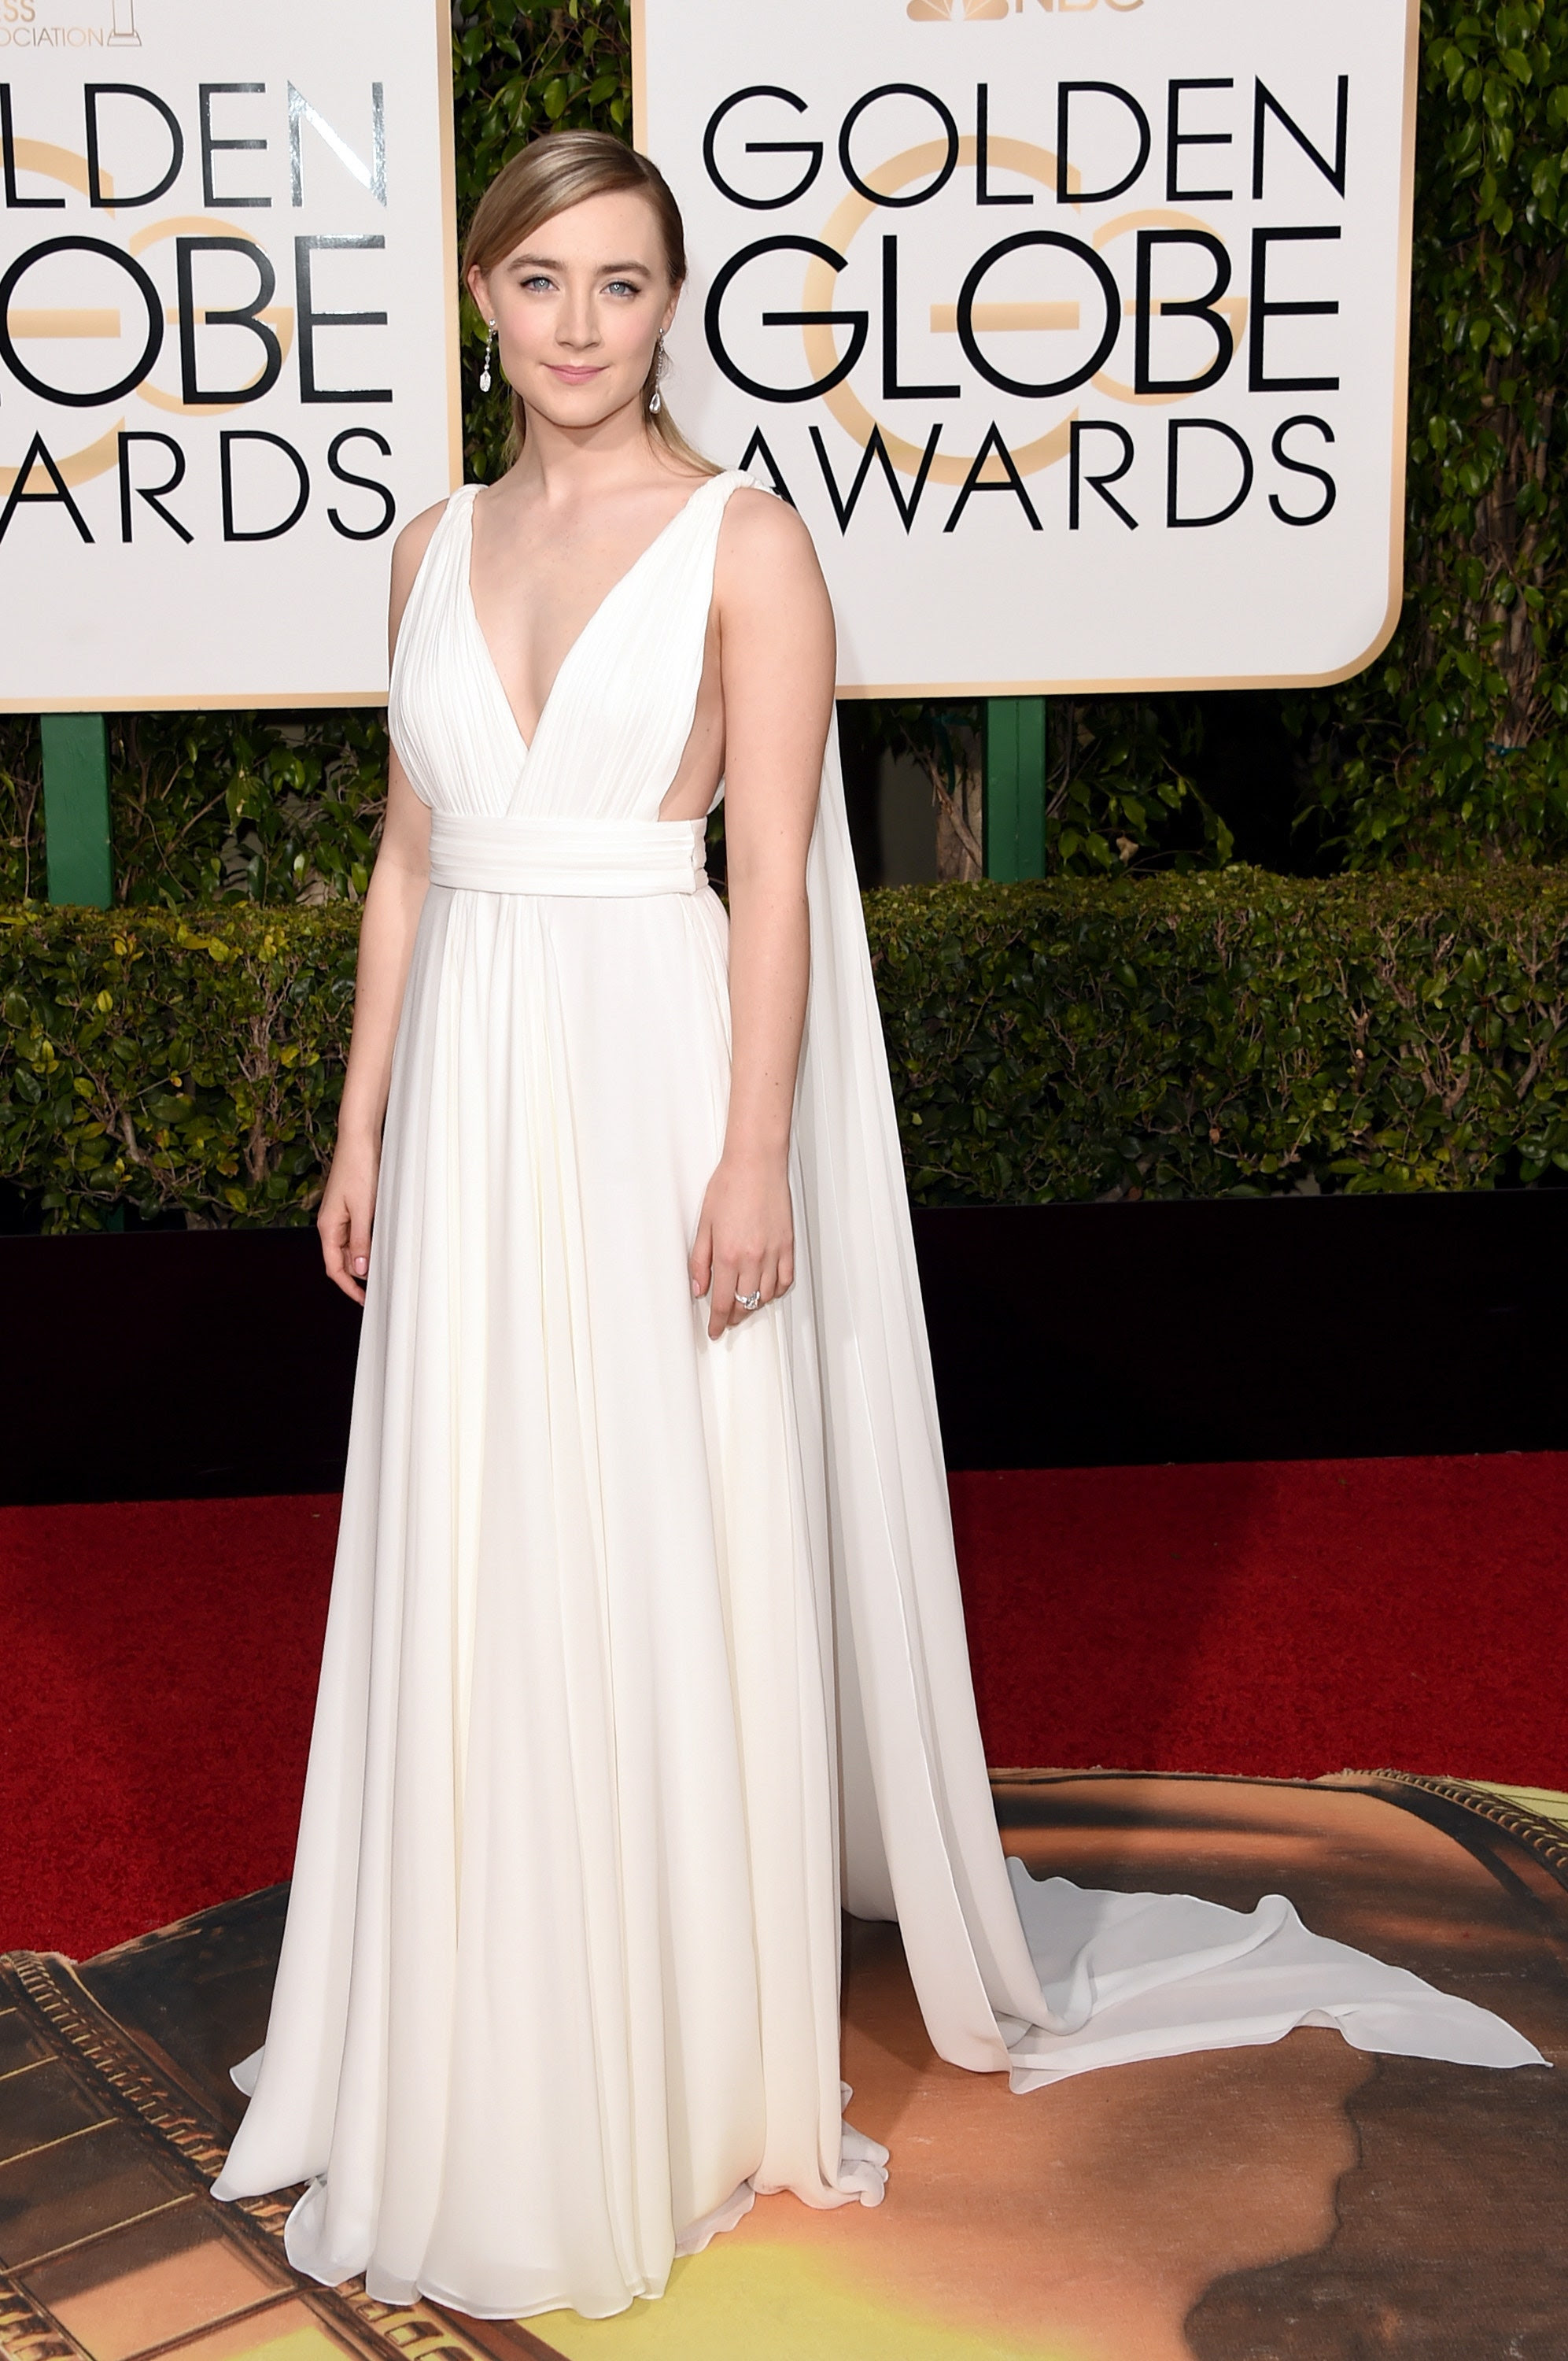 golden globes 2016 all the celebrity dresses from the red